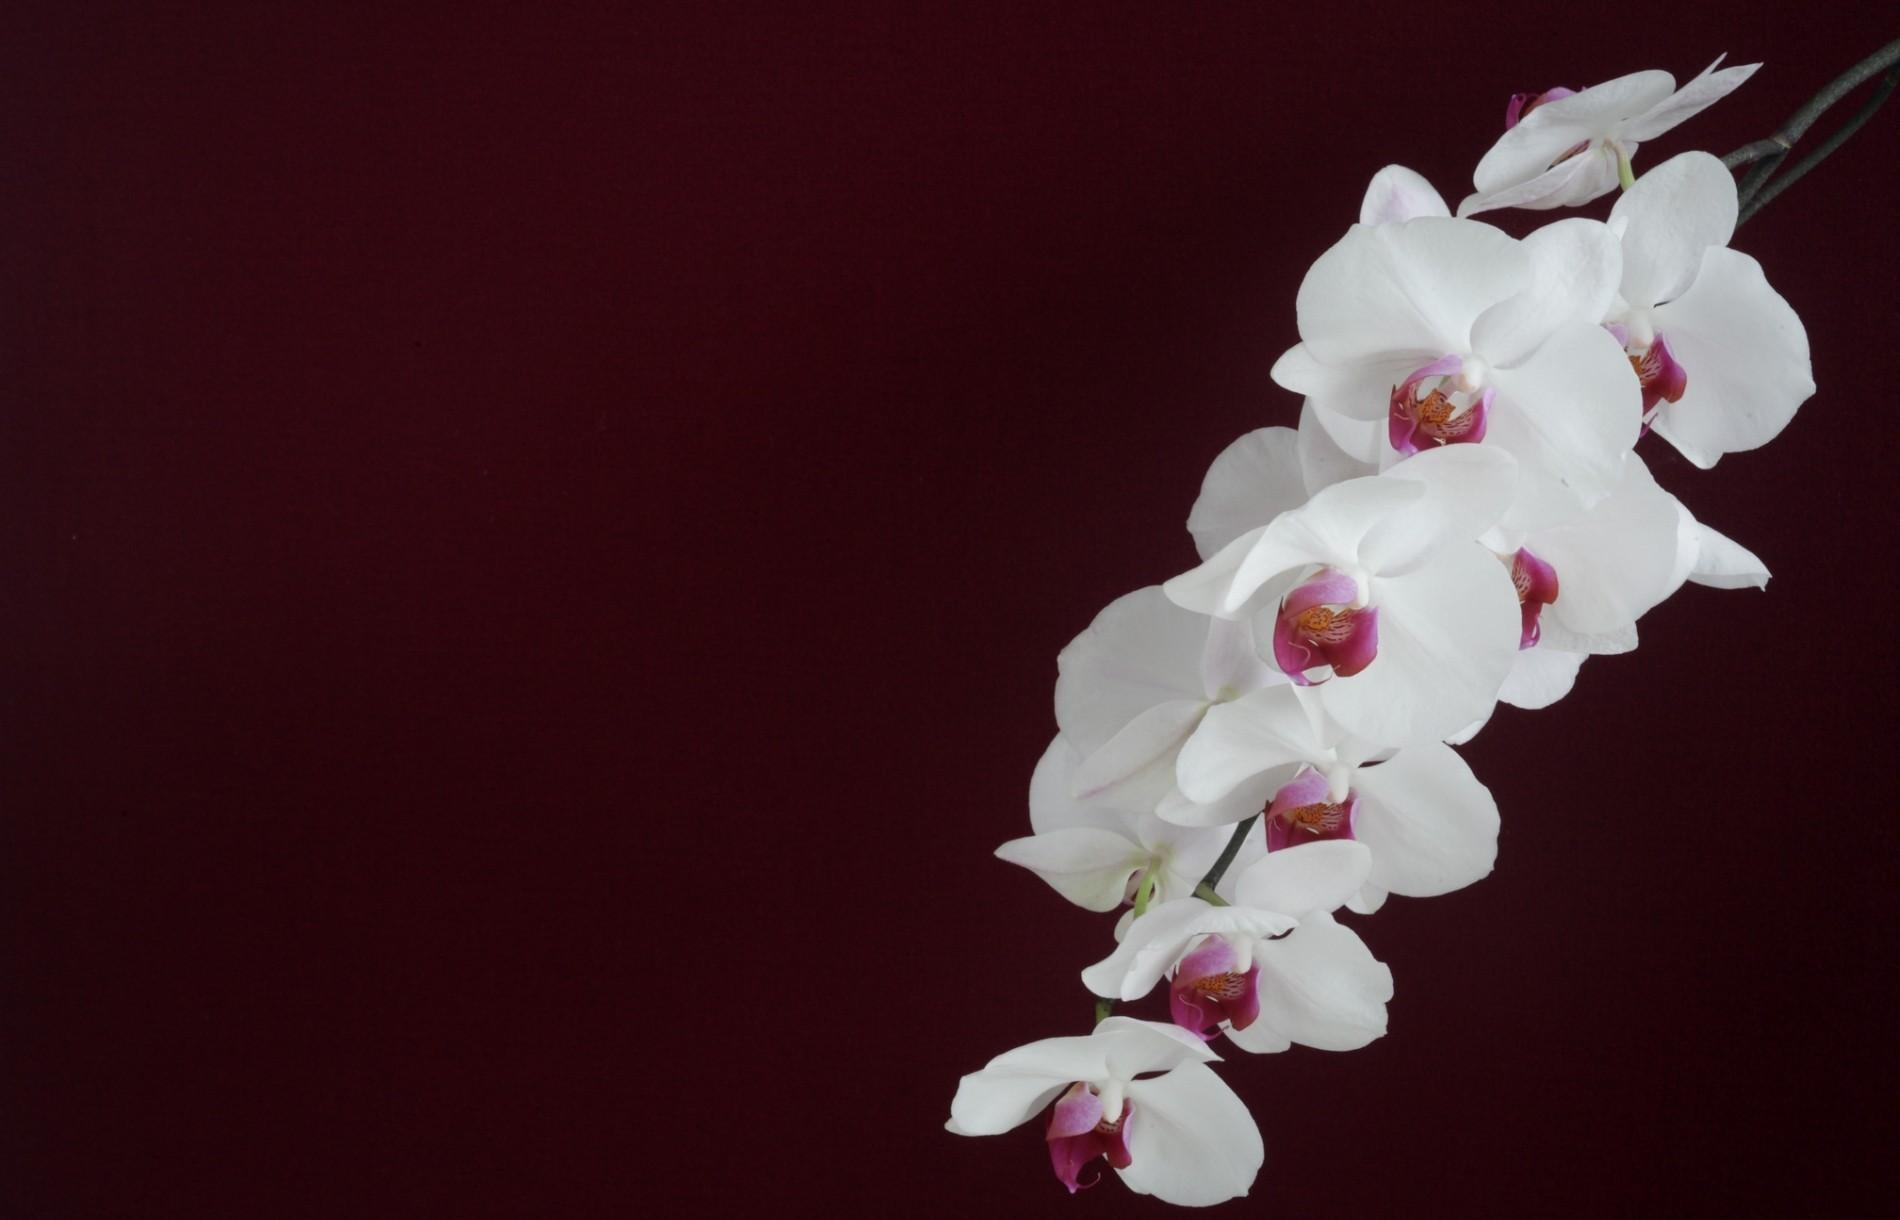 150170 download wallpaper Background, Minimalism, Branch, Orchid screensavers and pictures for free